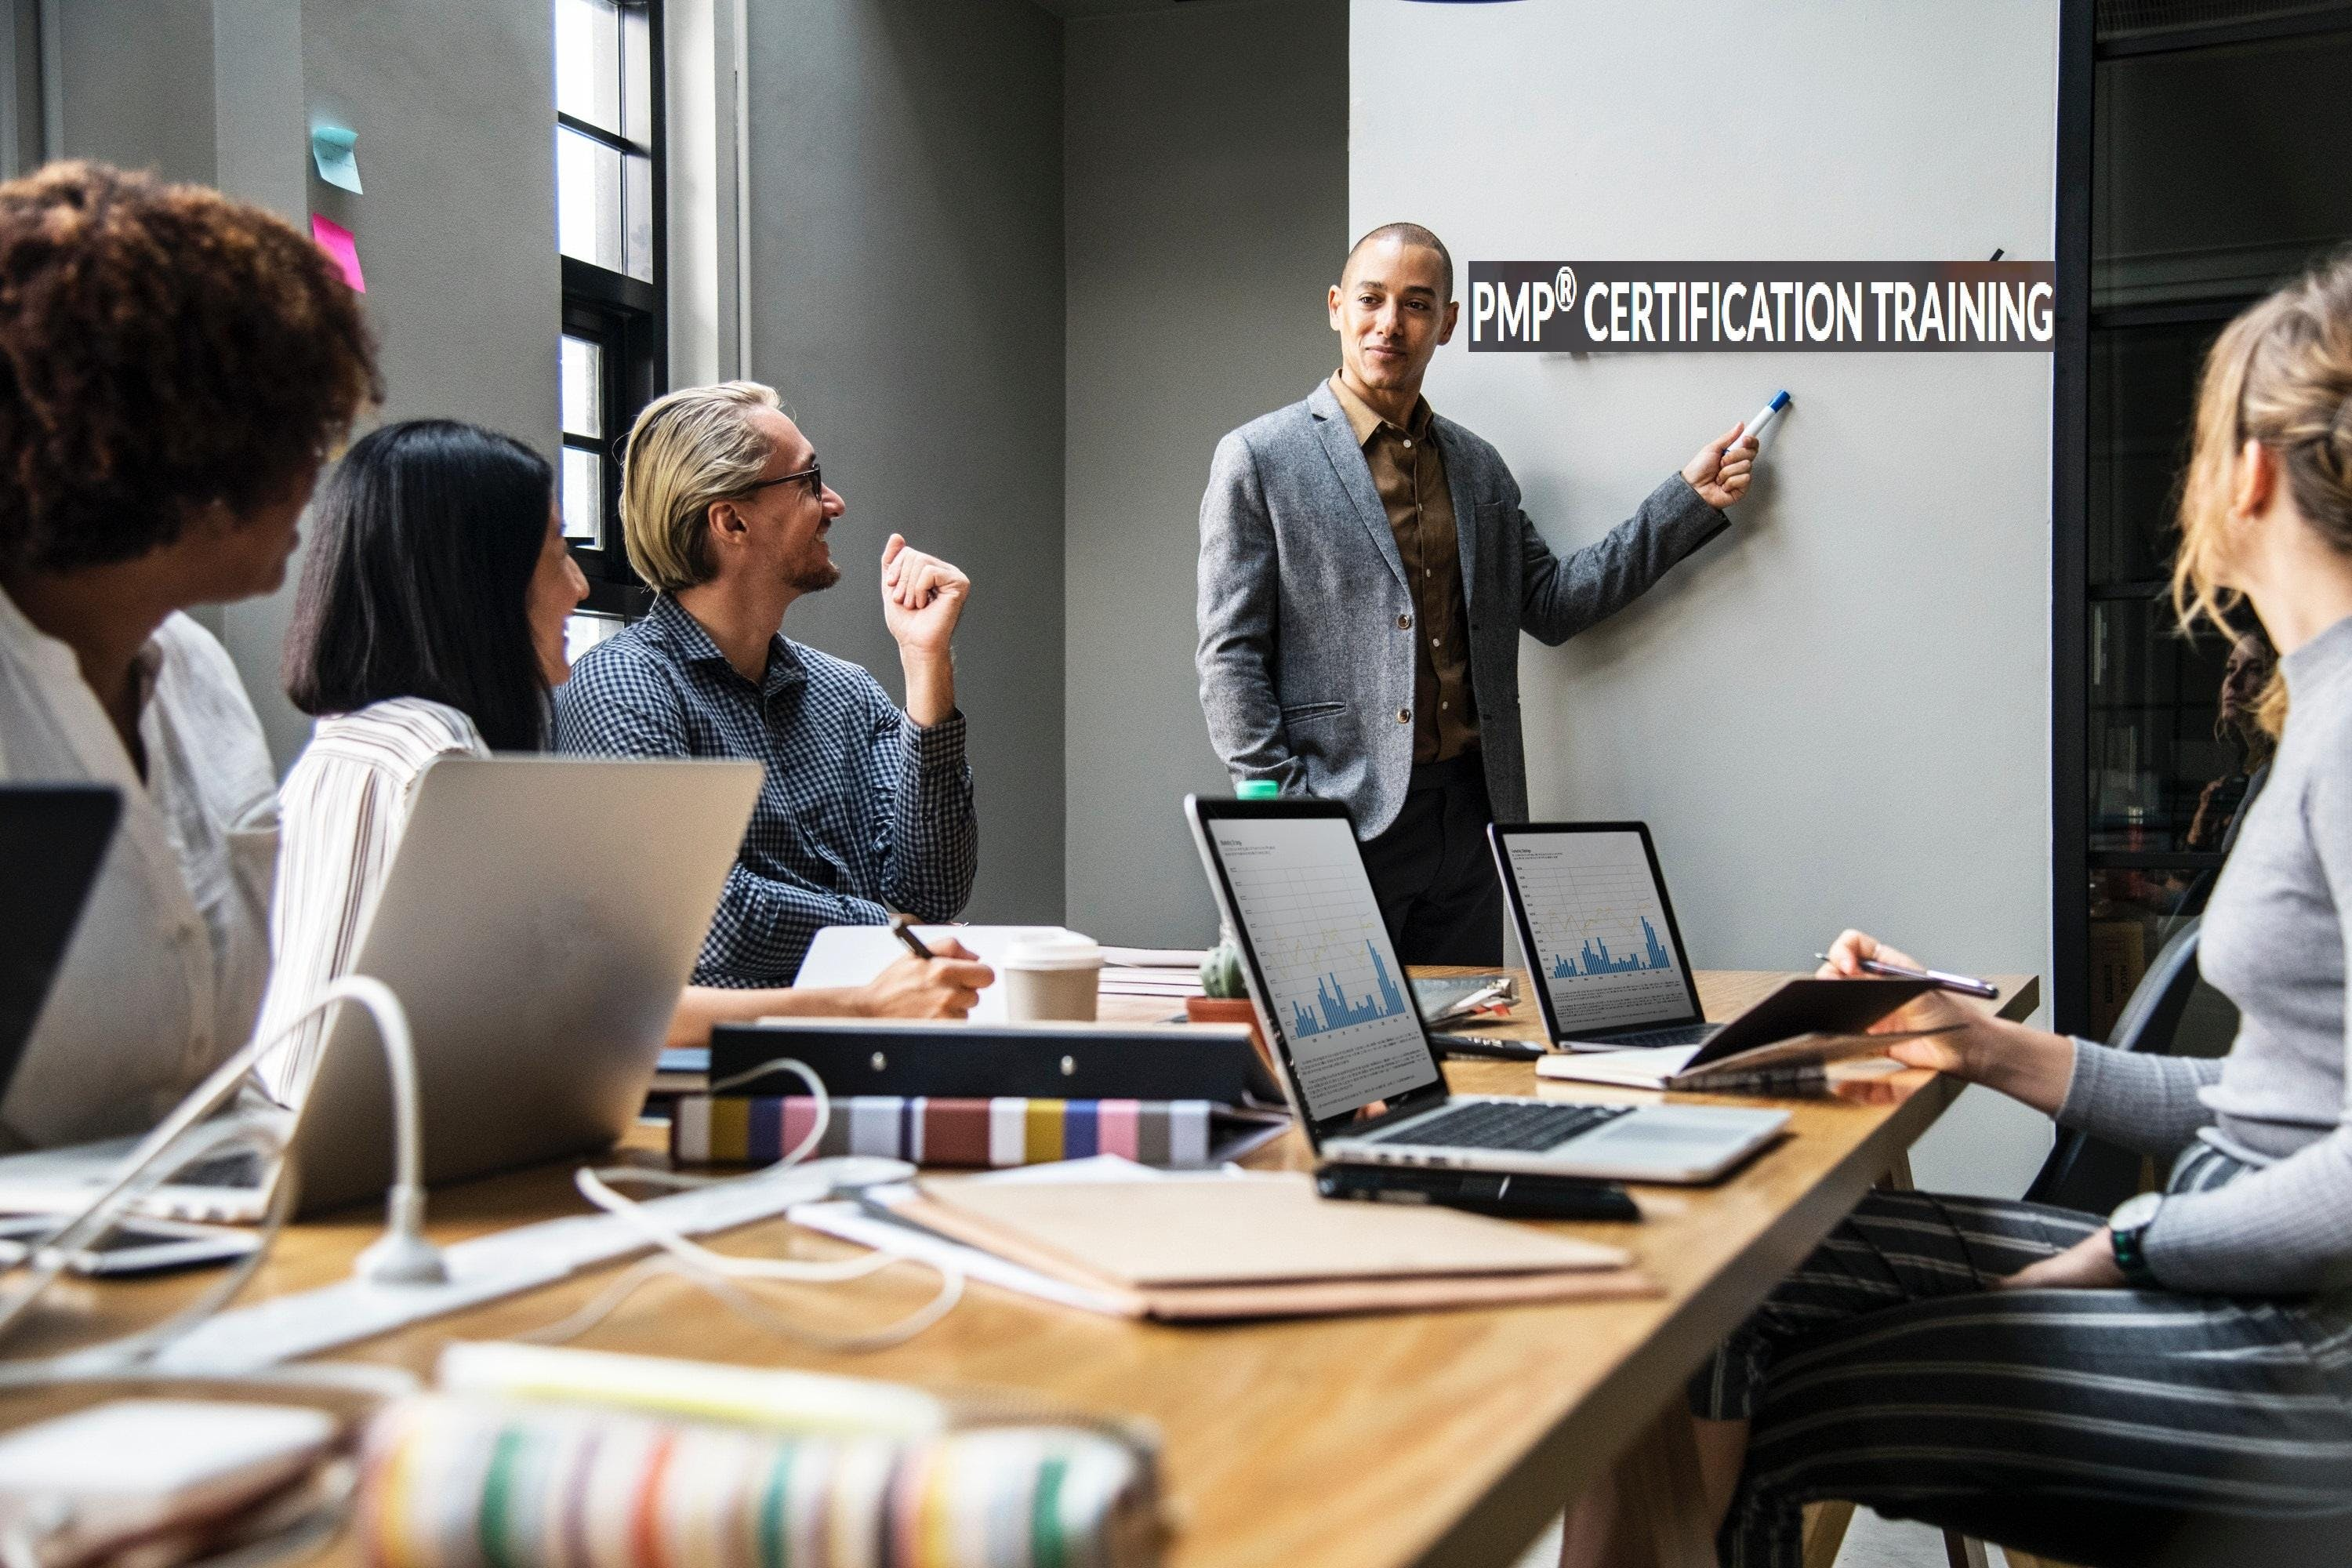 Pmp Training Course In Dallas Tx 23 Oct 2018